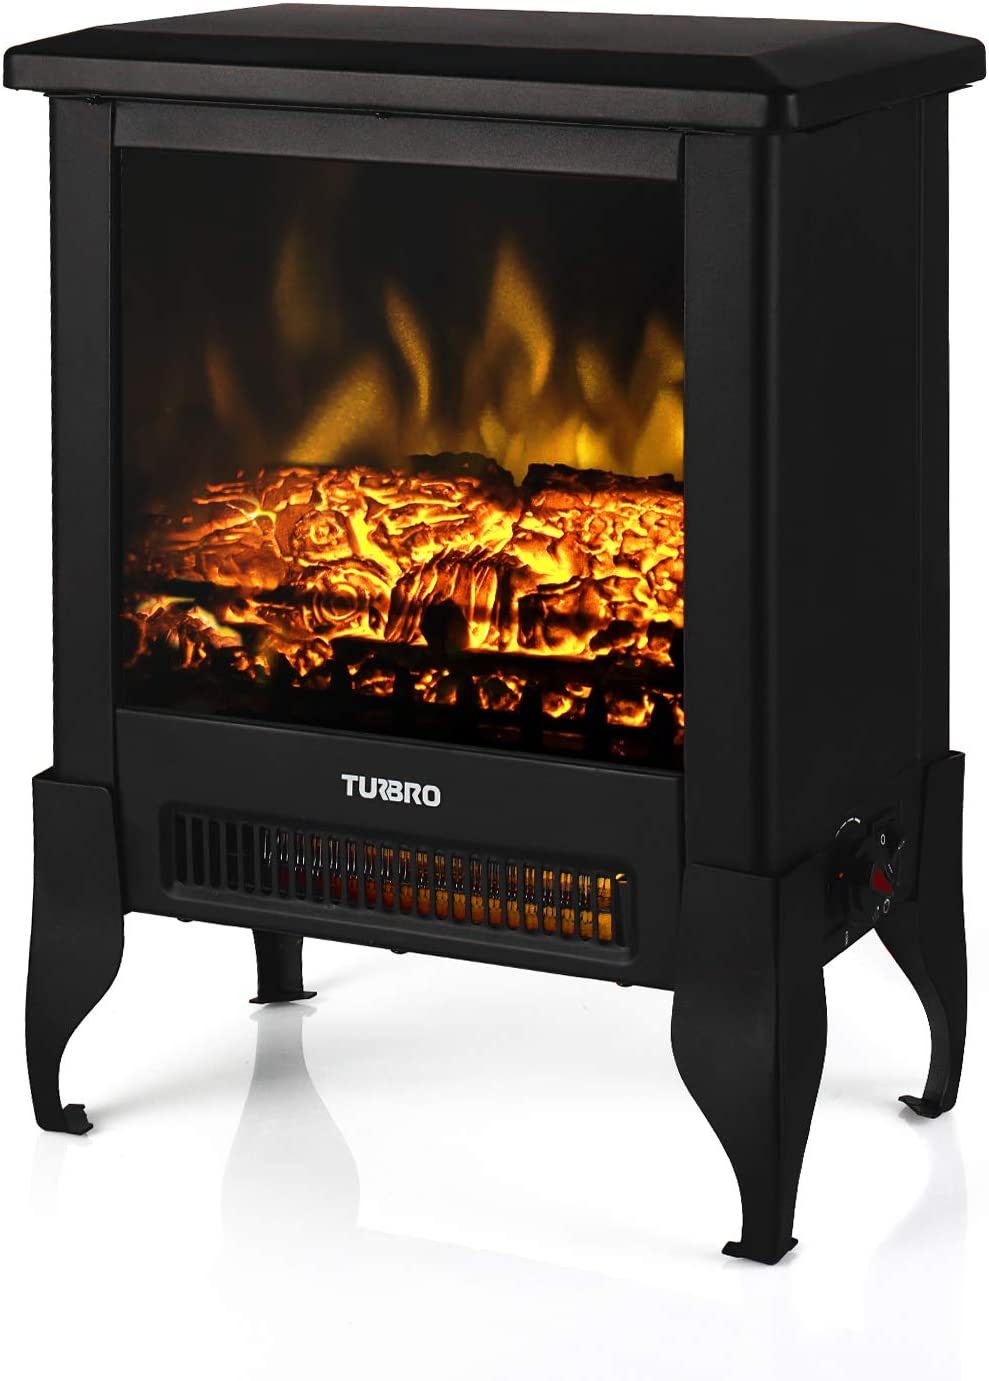 """TURBRO Suburbs TS17 Compact Electric Fireplace Heater, Freestanding Stove Heater with Realistic Flame - CSA Certified - Overheating Safety Protection - for Small Spaces - 17"""" 1400W"""